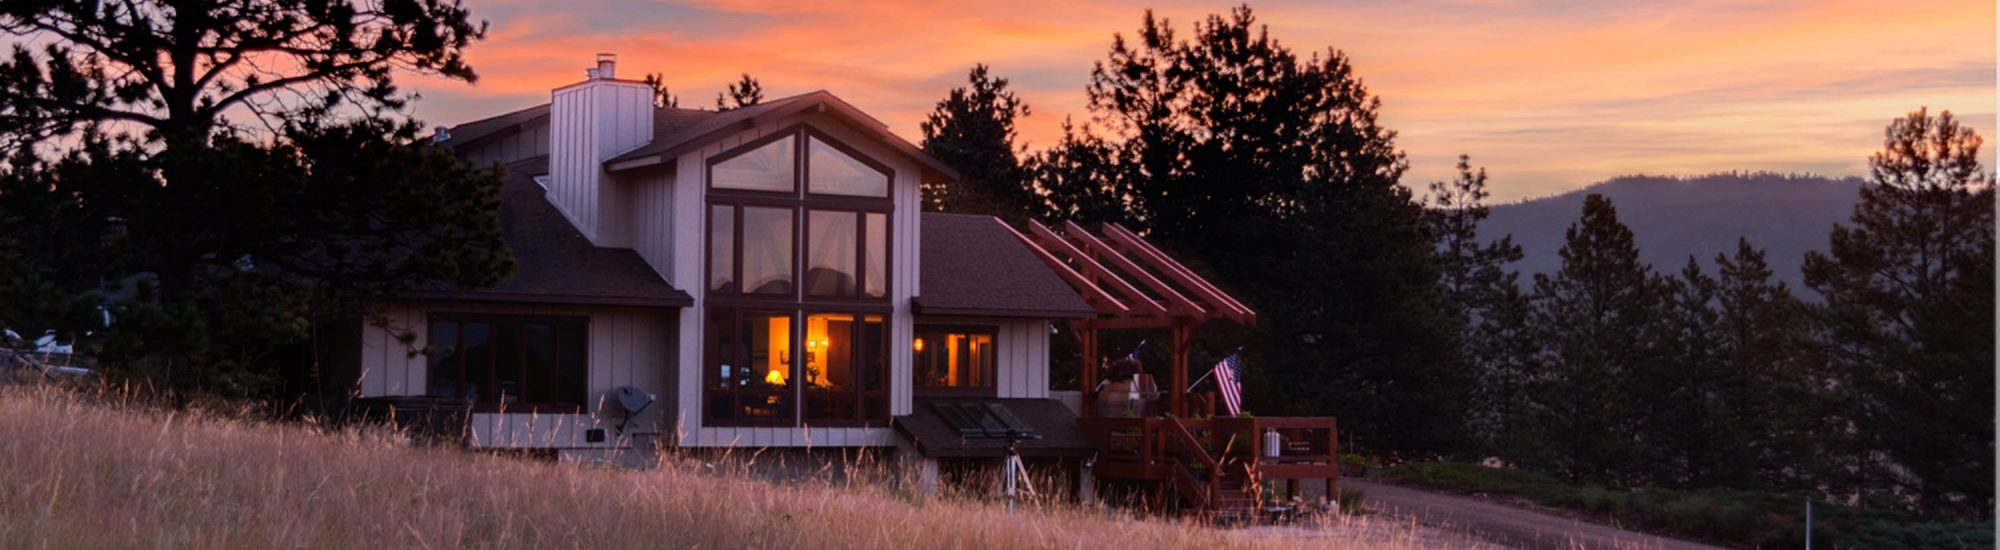 Beck Residence Remodel and Addition - sunset